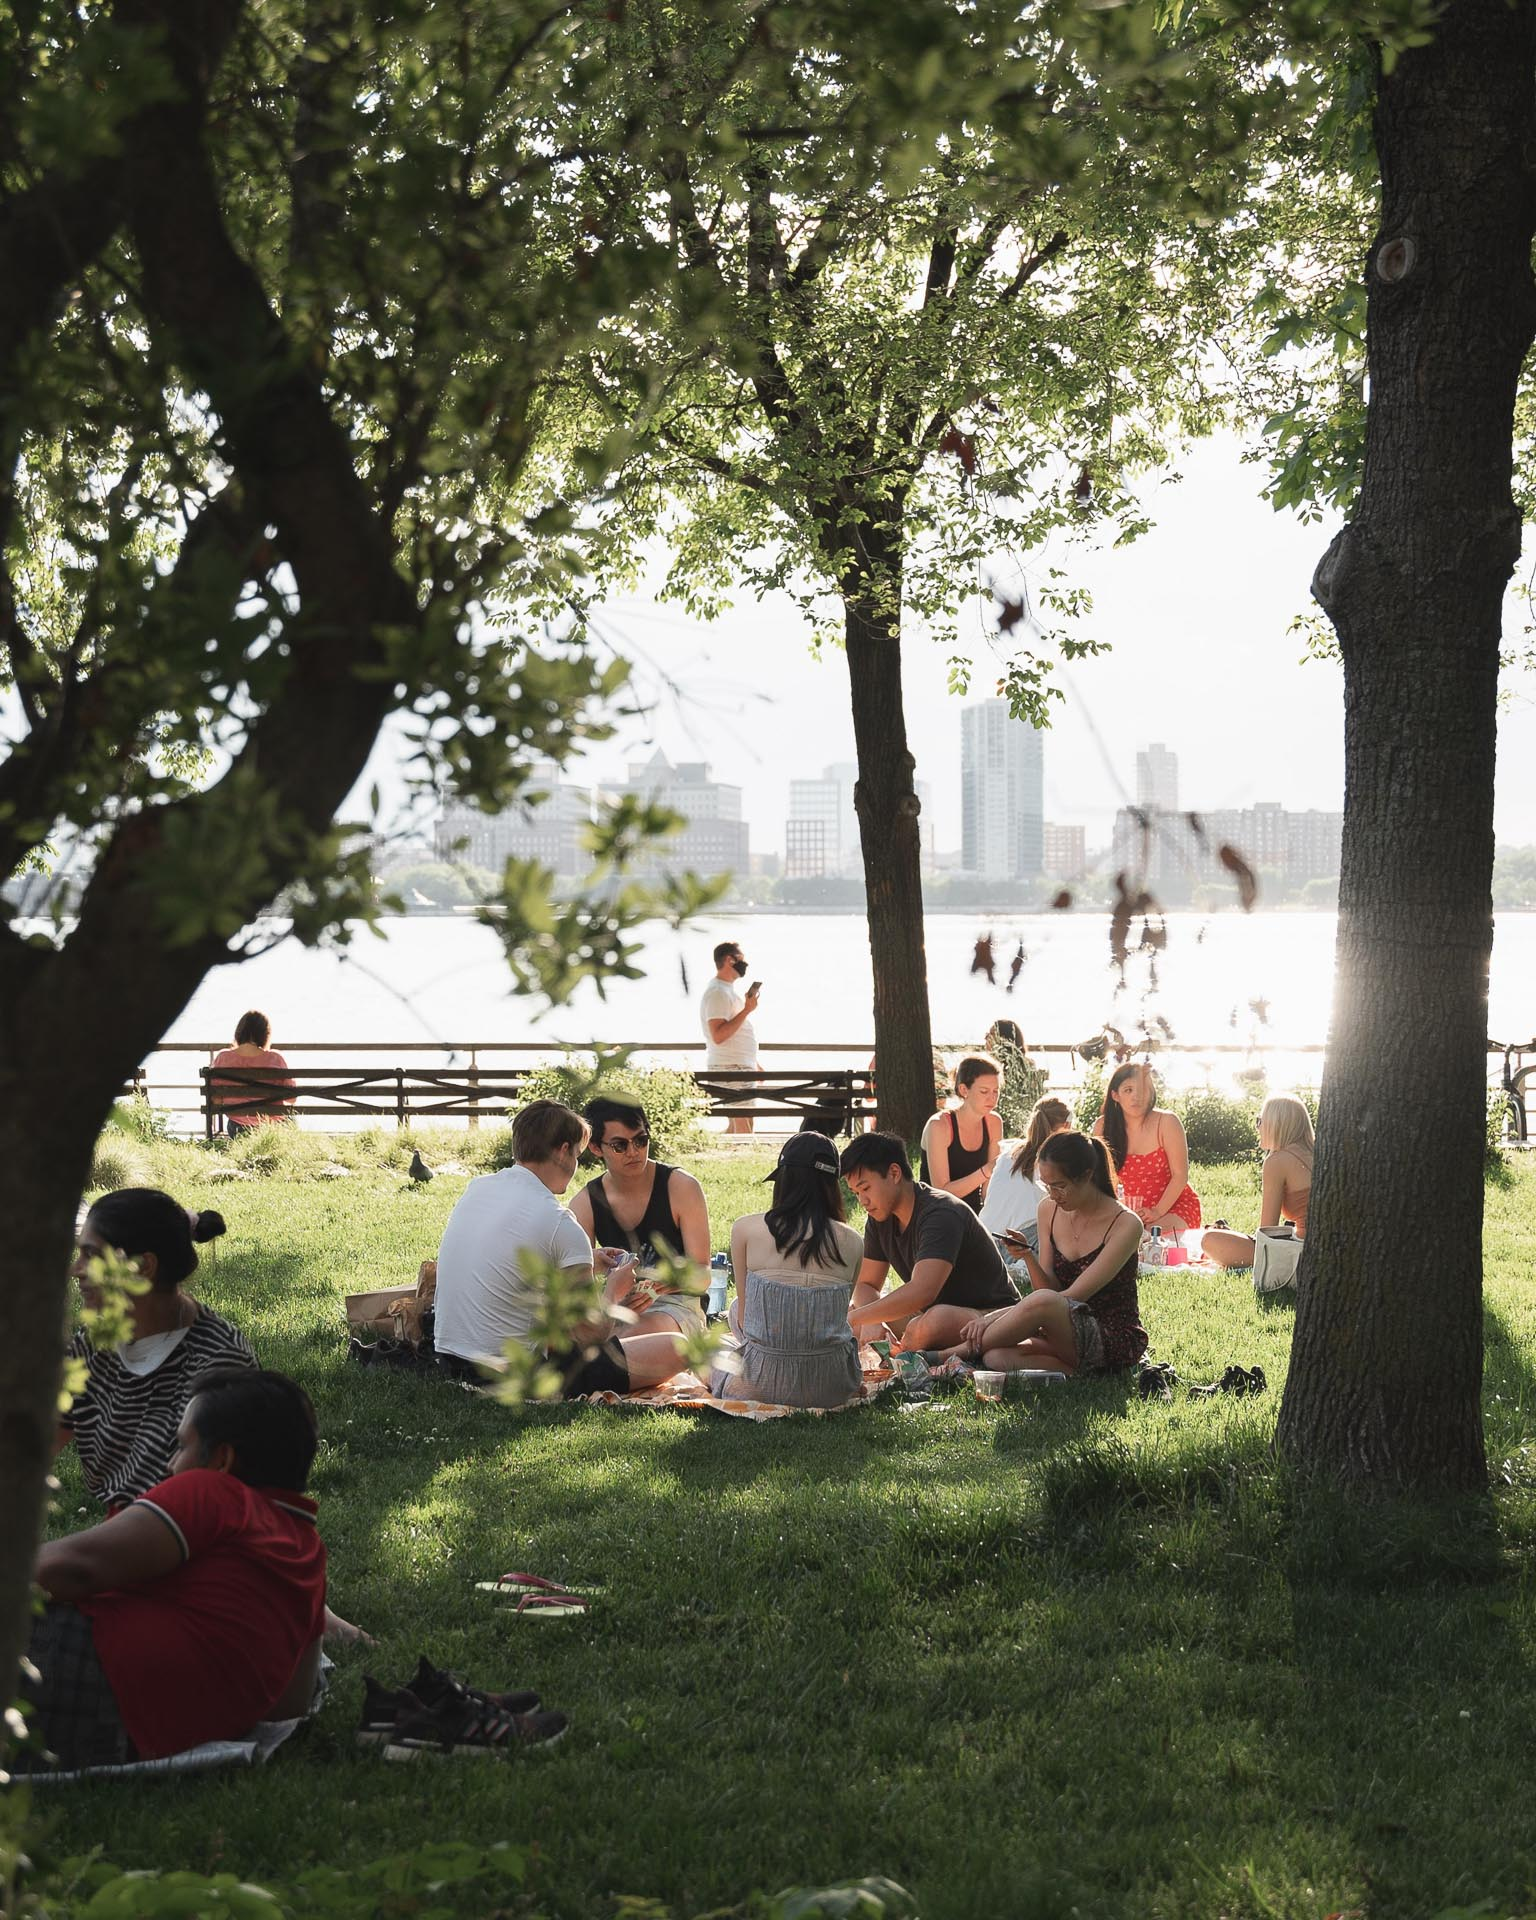 People having a picnic in a park.